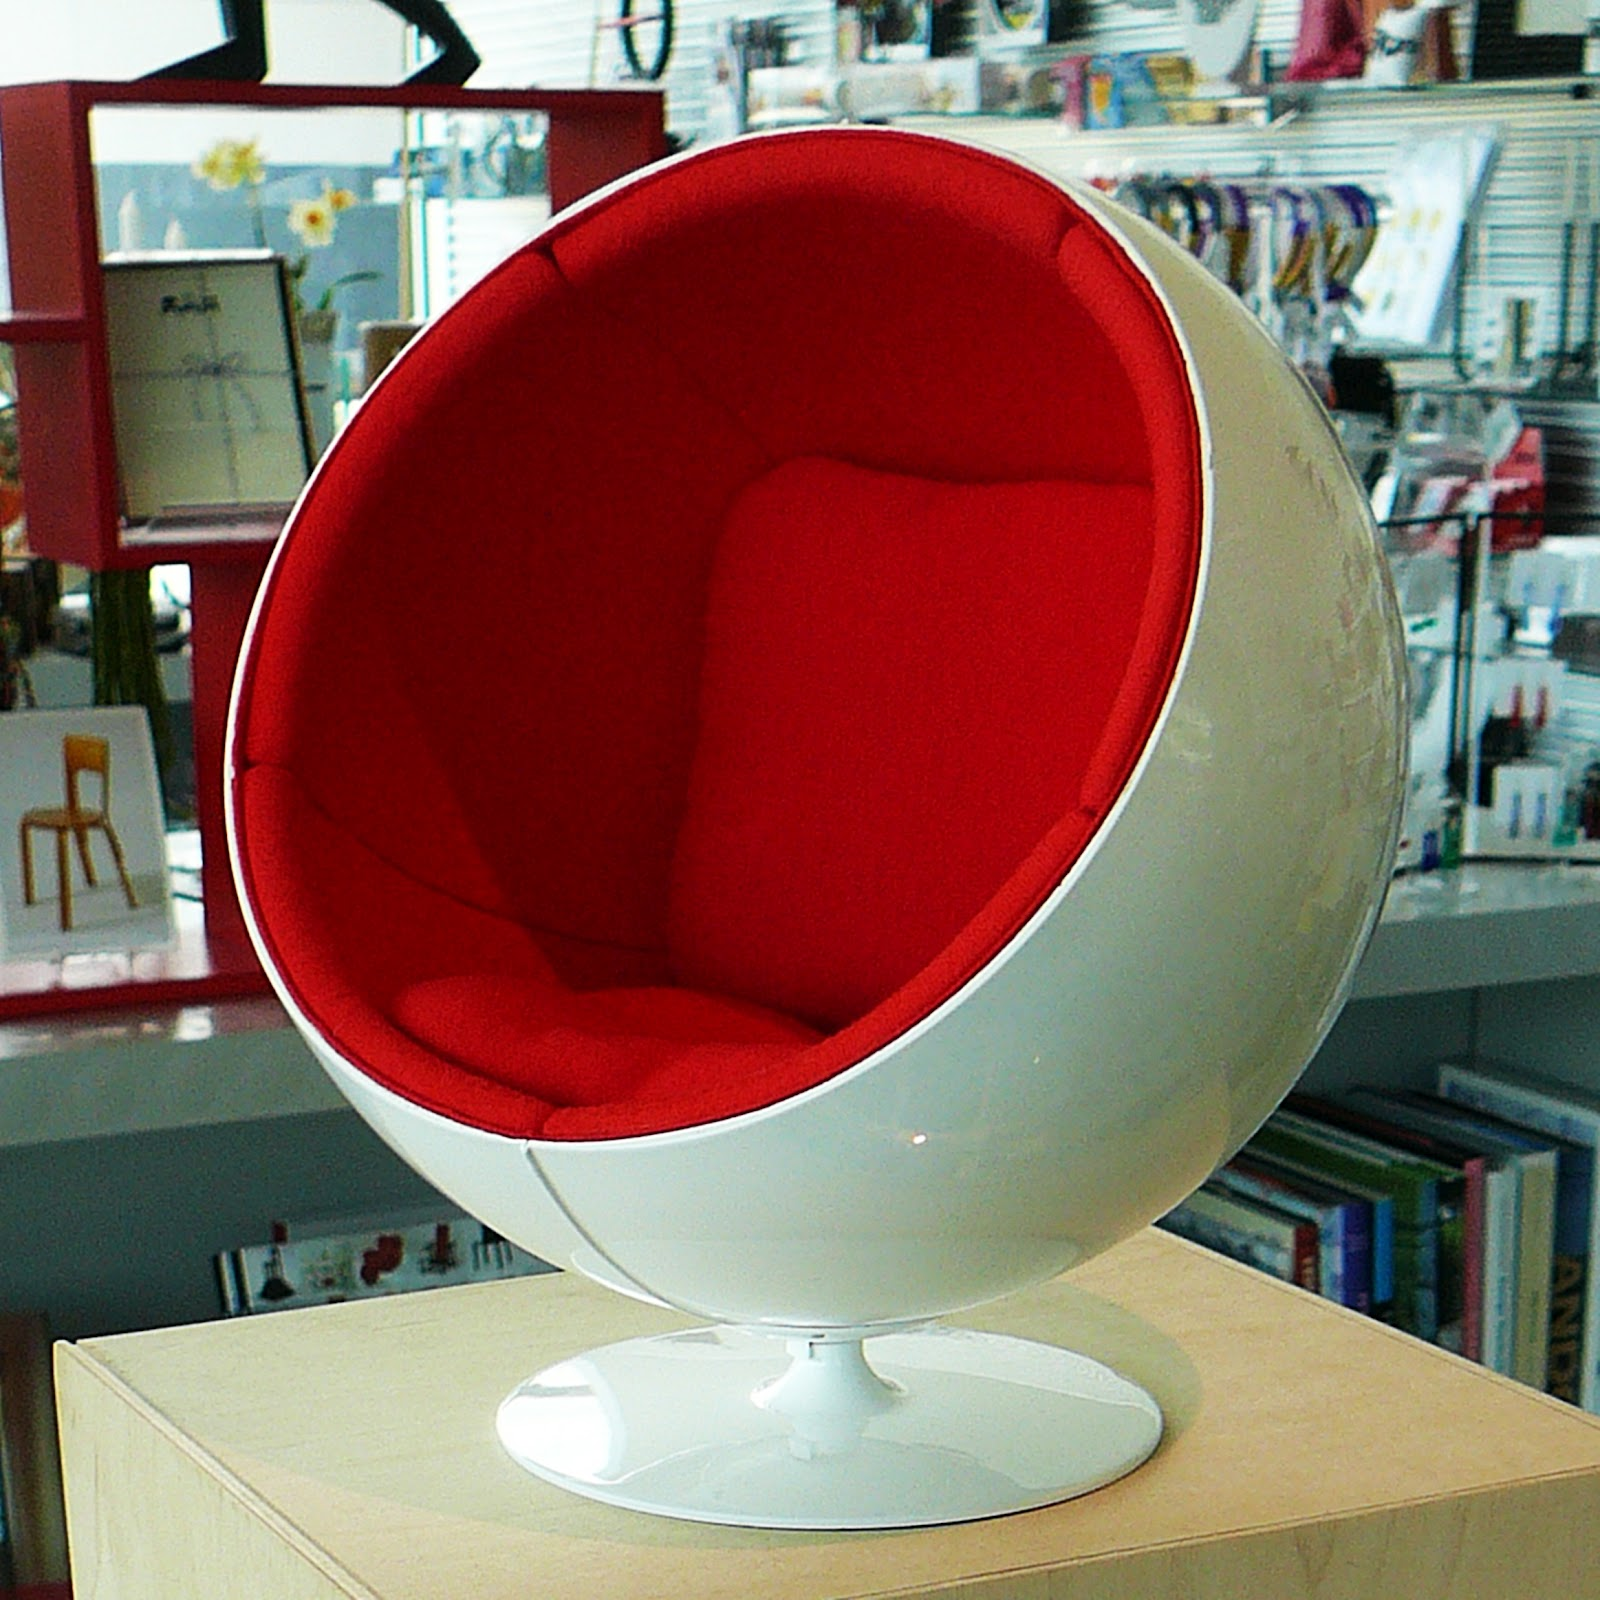 eero aarnio ball fabric red replica products side chair gloss nathan chairs style black copy